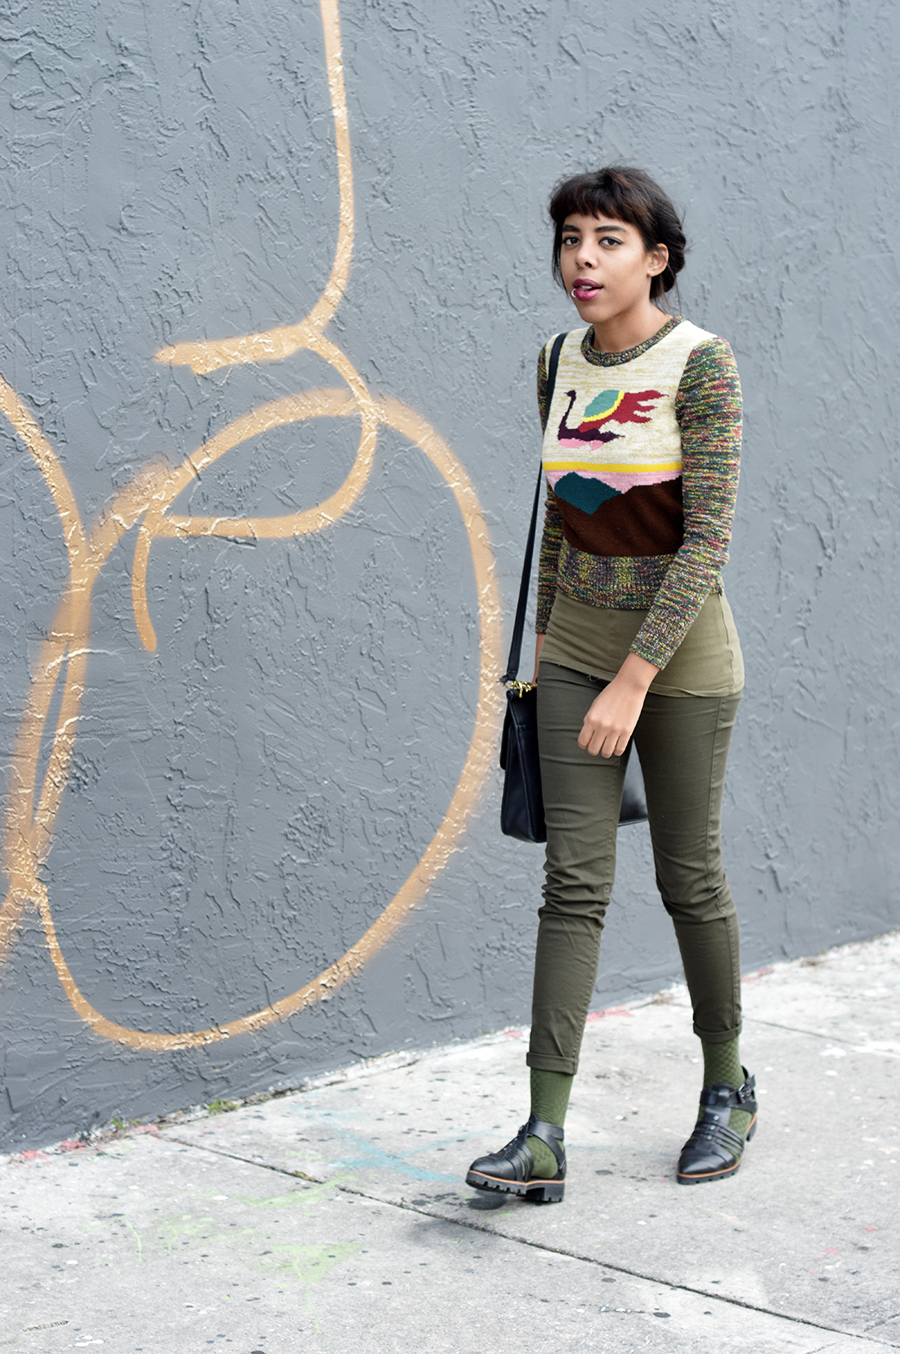 Indie Fashion Blogger Anais Alexandre of Down to Stars in an all olive green outfit walking around Wynwood